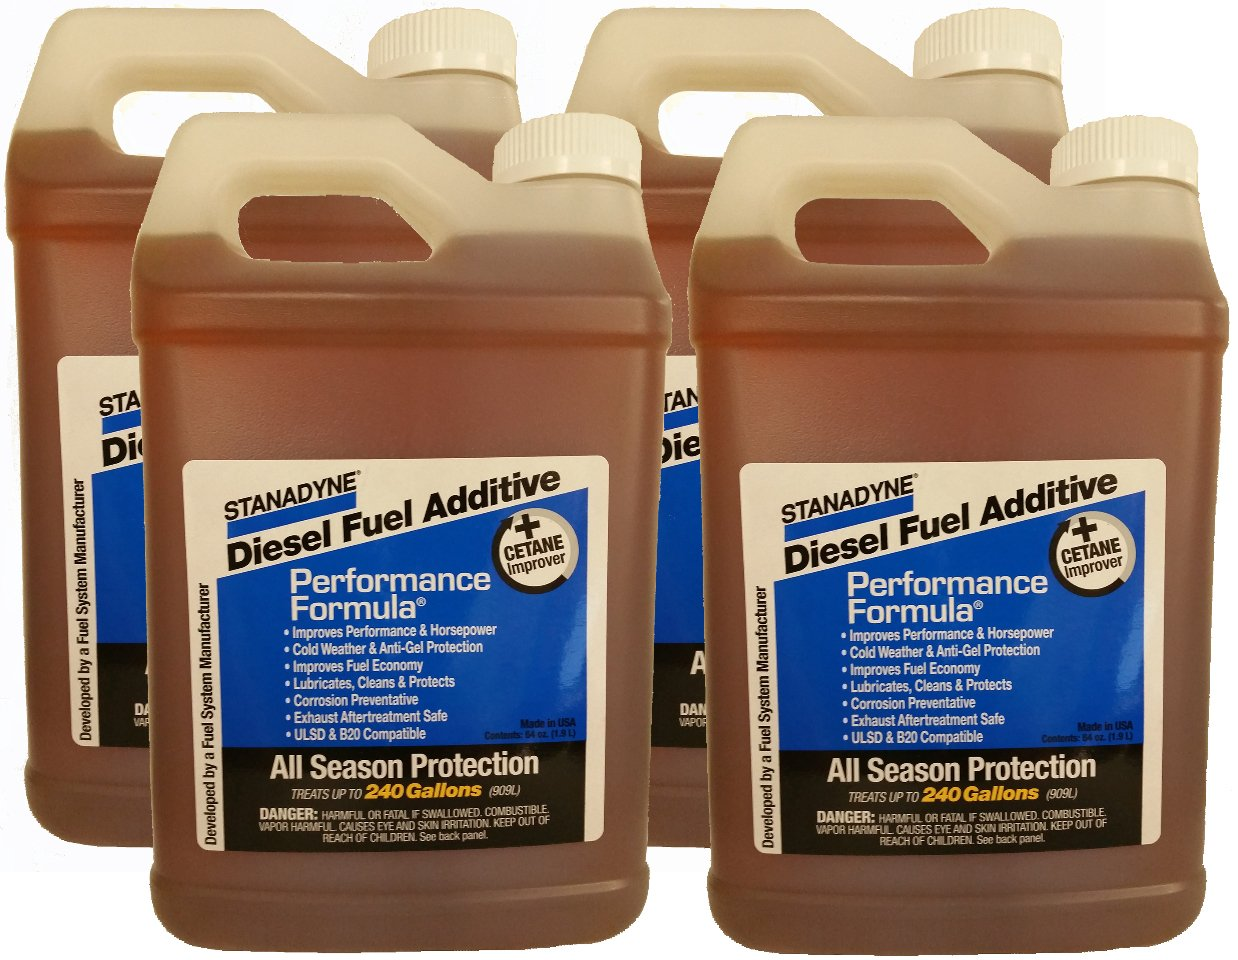 Stanadyne Performance Formula Diesel Fuel Additive 4 Pack of 1/2 Gallon Jugs - Part # 38566 by Stanadyne